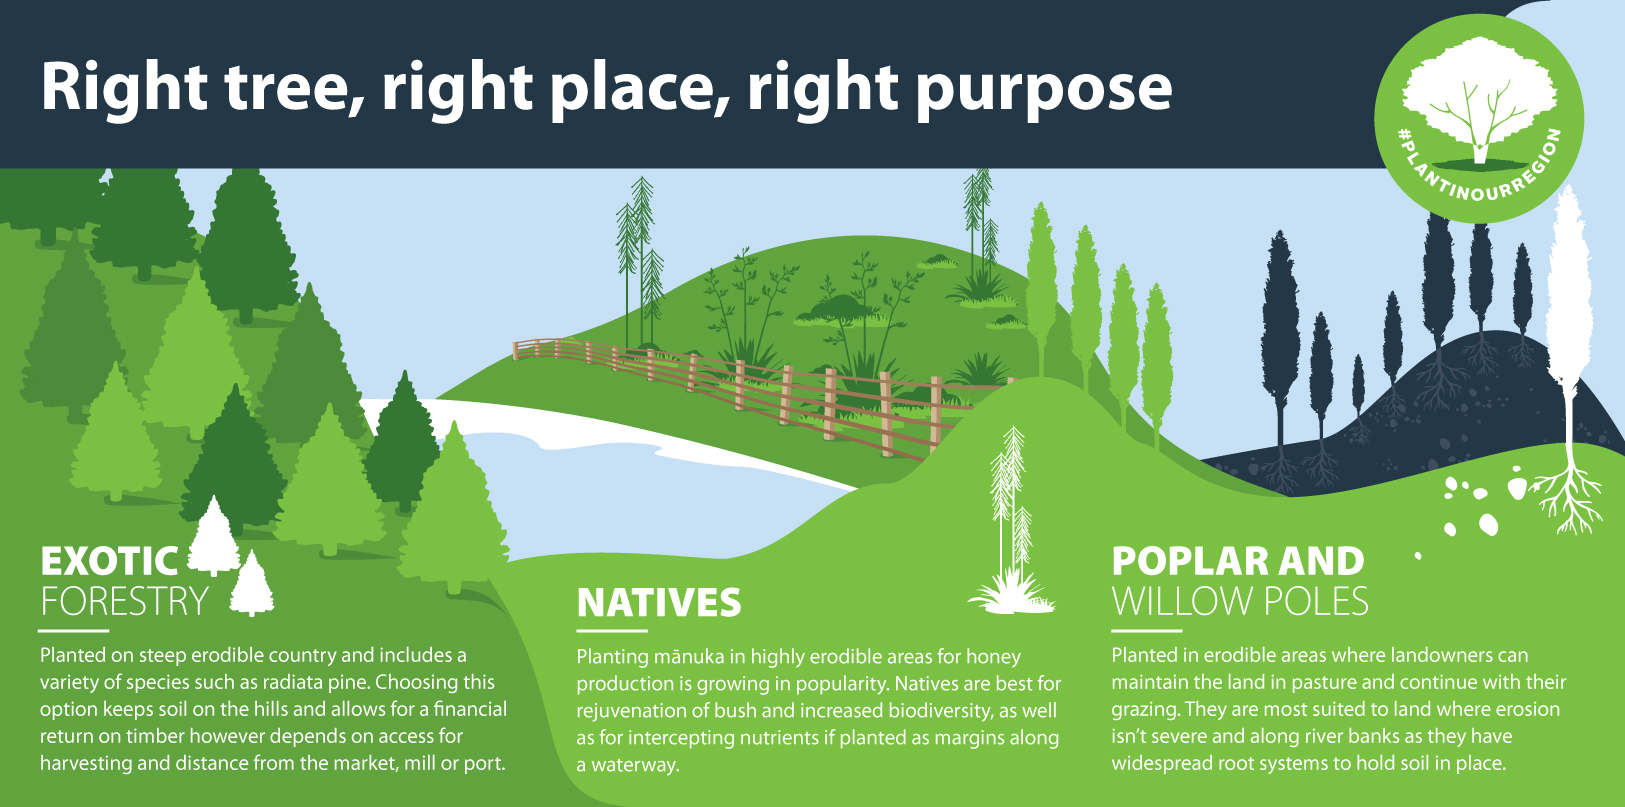 #PlantInOurRegion - Right tree, right place, right purpose